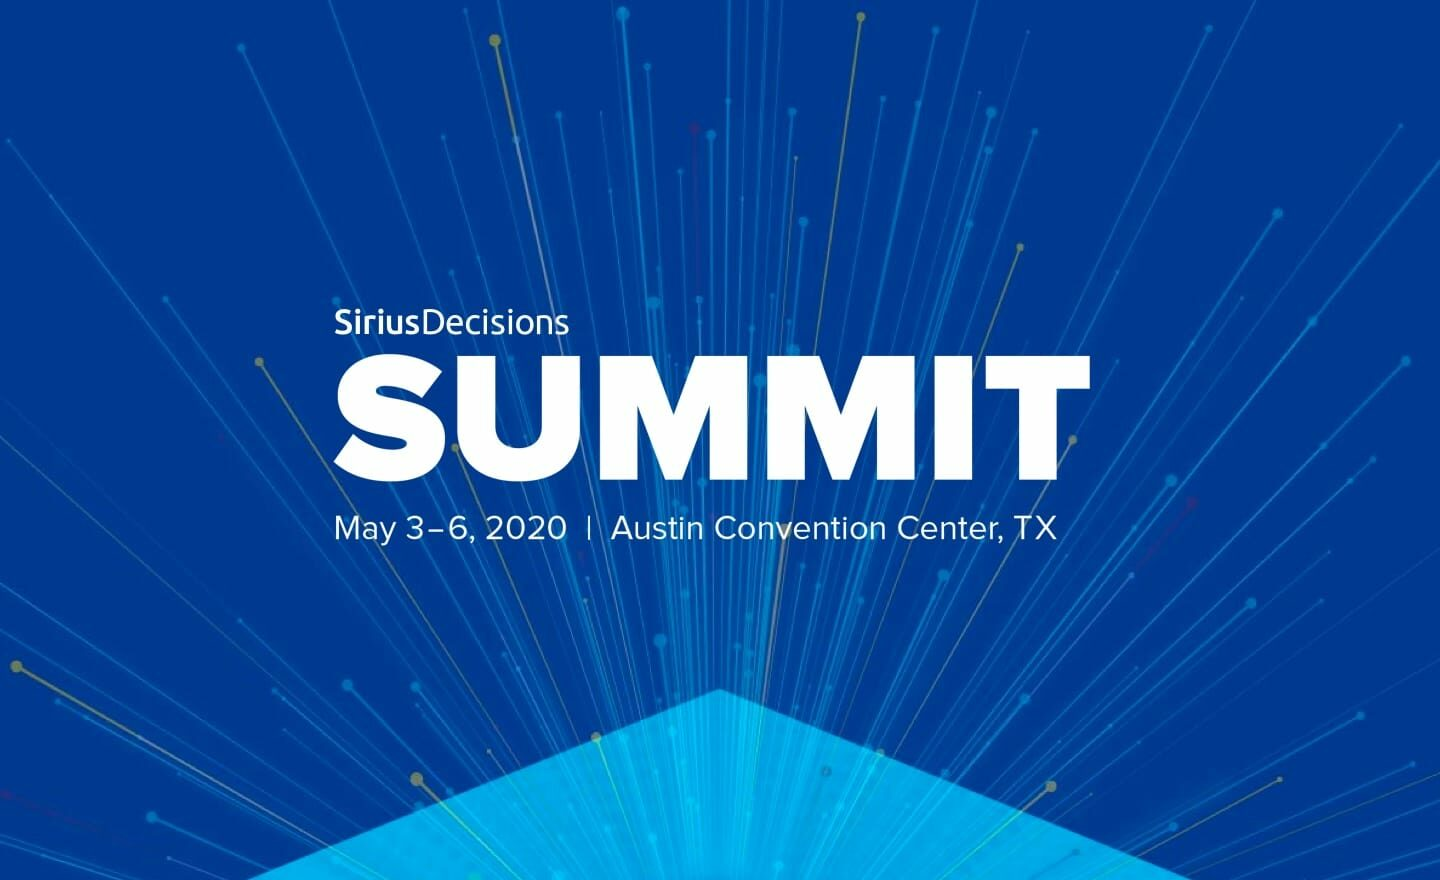 SiriusDecisions Summit 2020